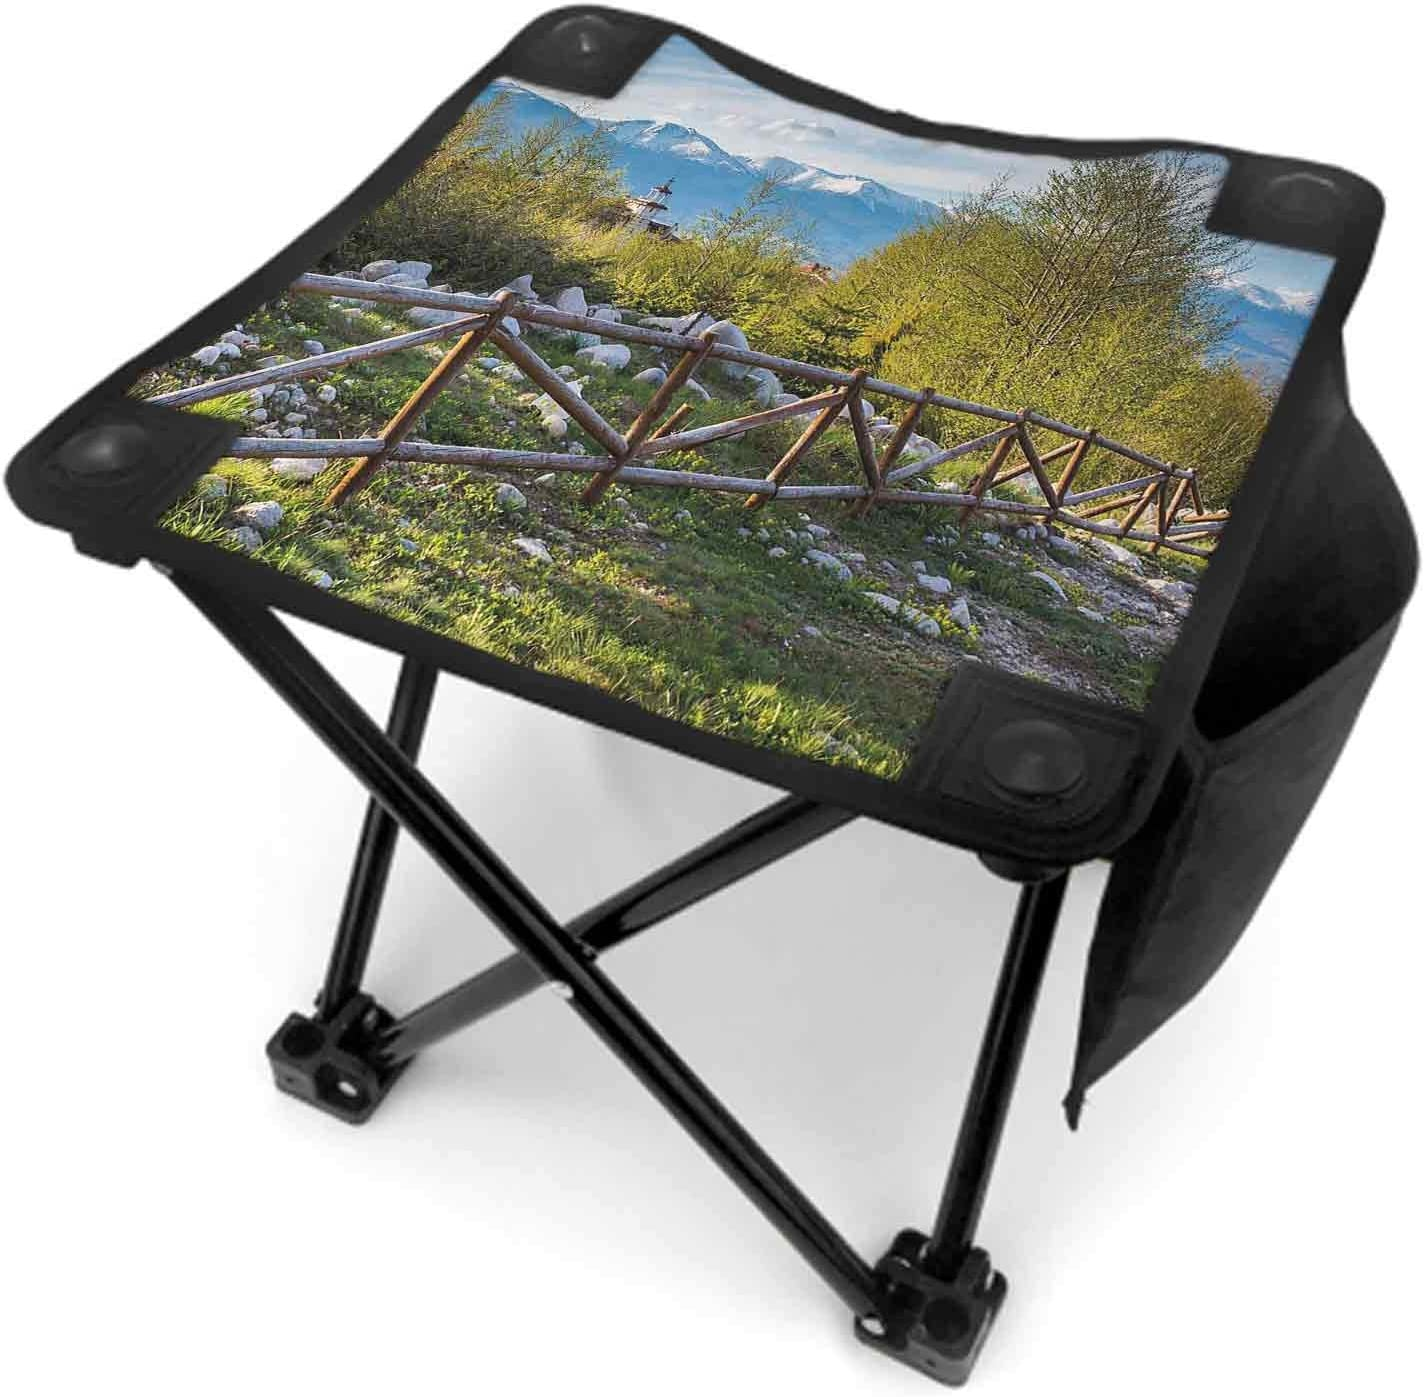 Farmland Camp Chair with Carry Bag, Artsy Idyllic Scene with Tree Trunk Plank and Snow Mountain Range The Alps Photo Camping Gear Green Blue